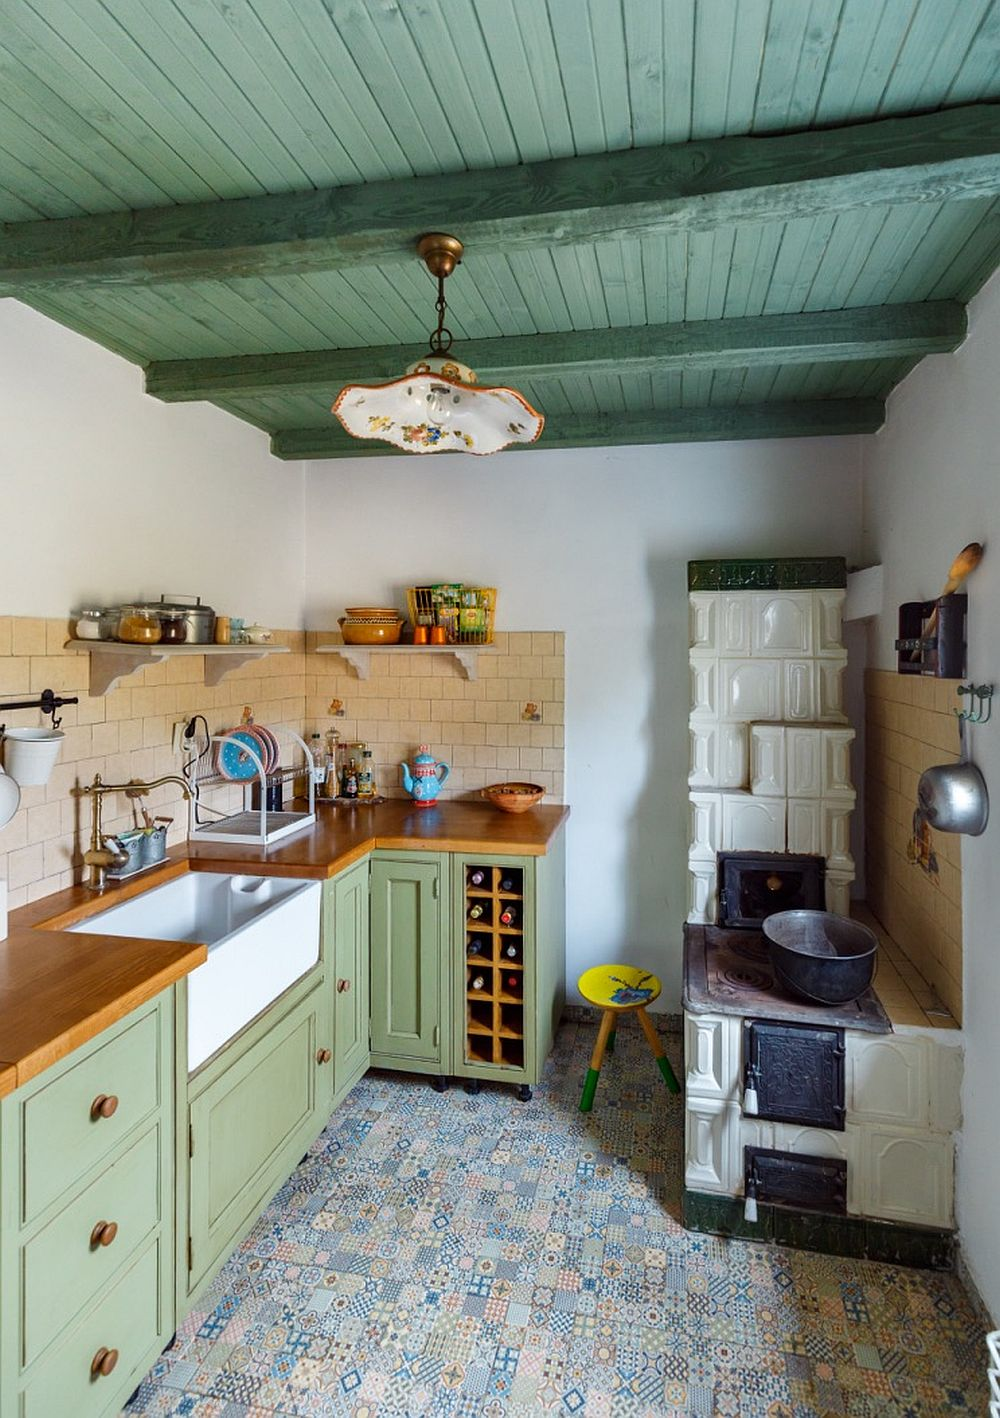 The hearth in the corner can be used for cooking, it's not only a decor element